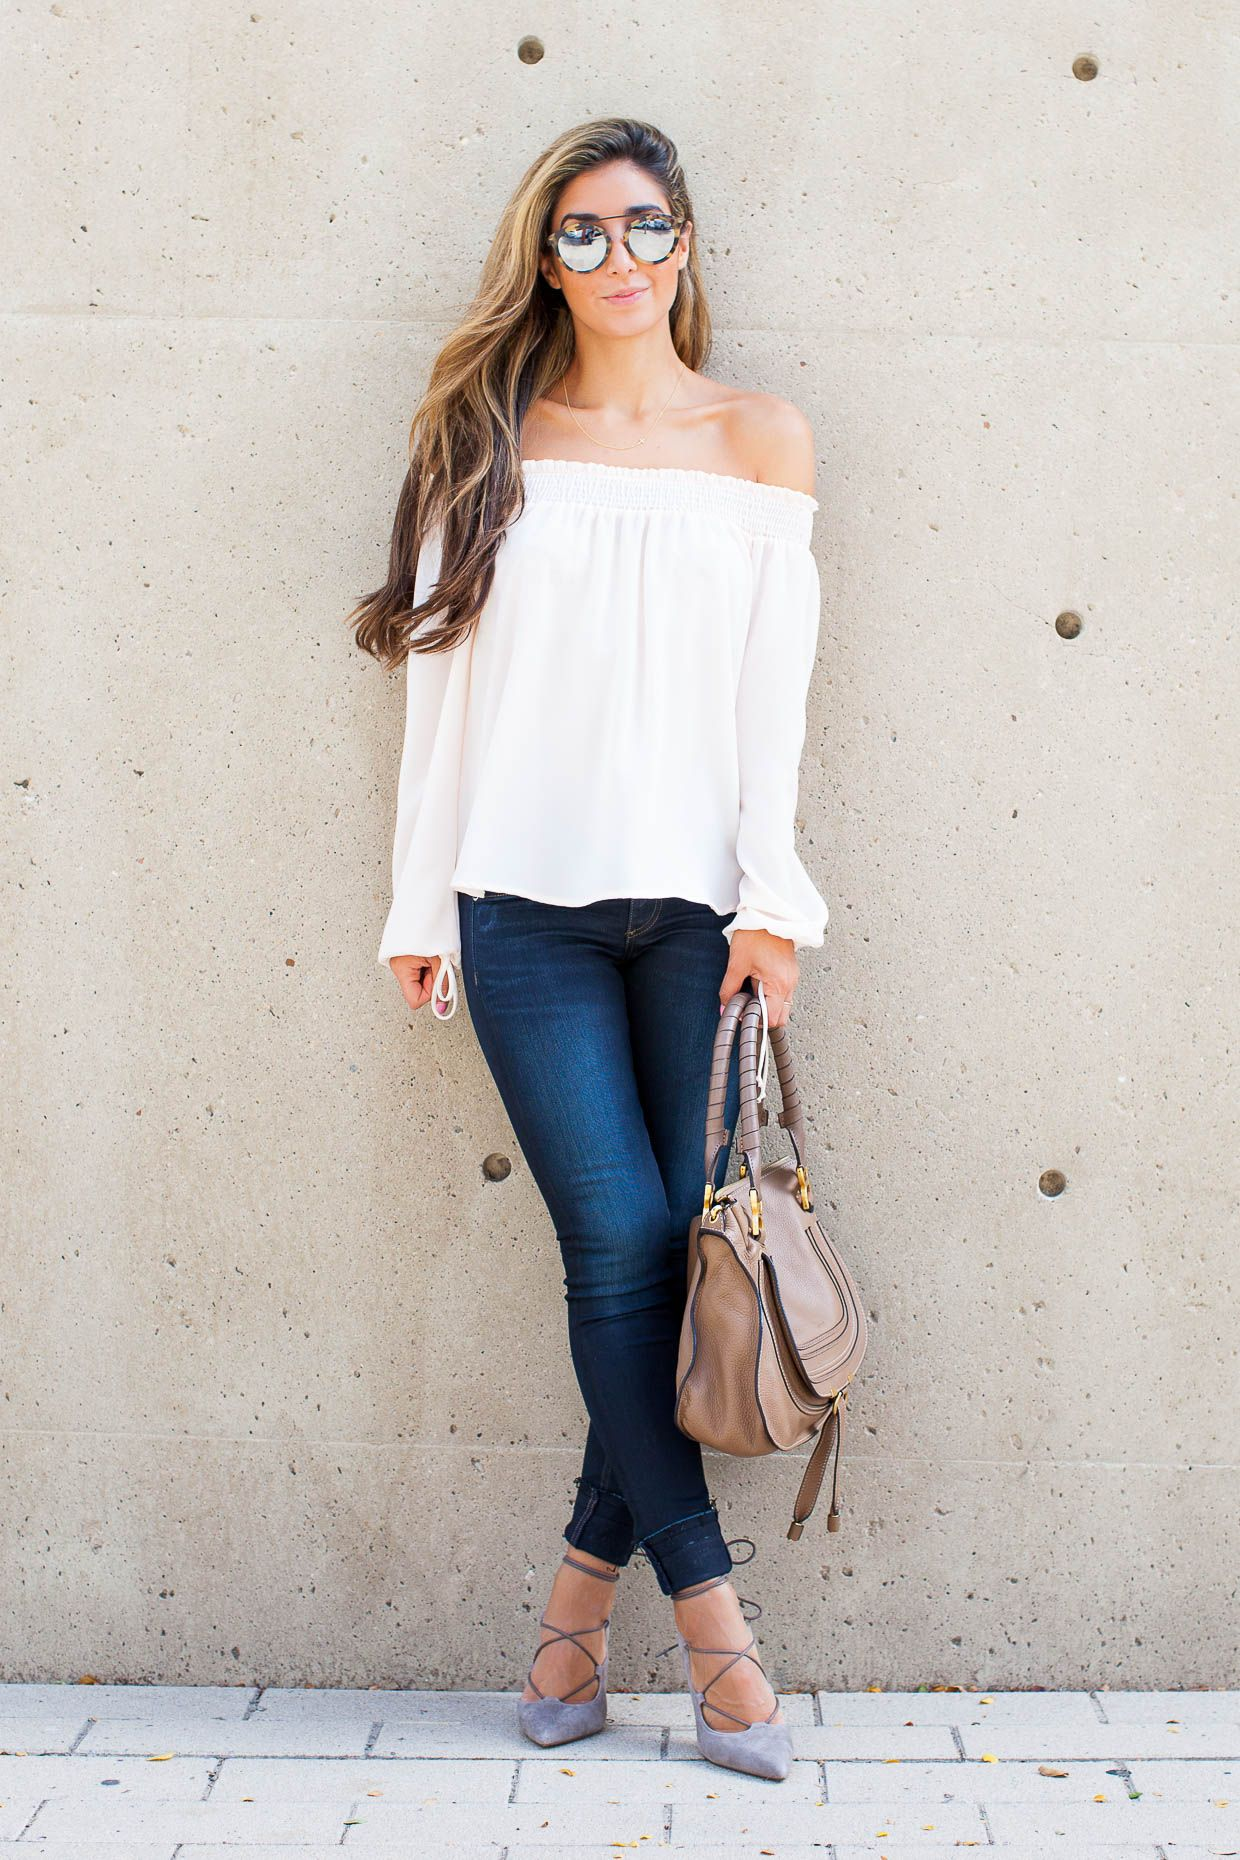 63a13917e5e5 Fashion Blogger The Darling Detail is wearing a Chelsea28 Off the Shoulder  Top